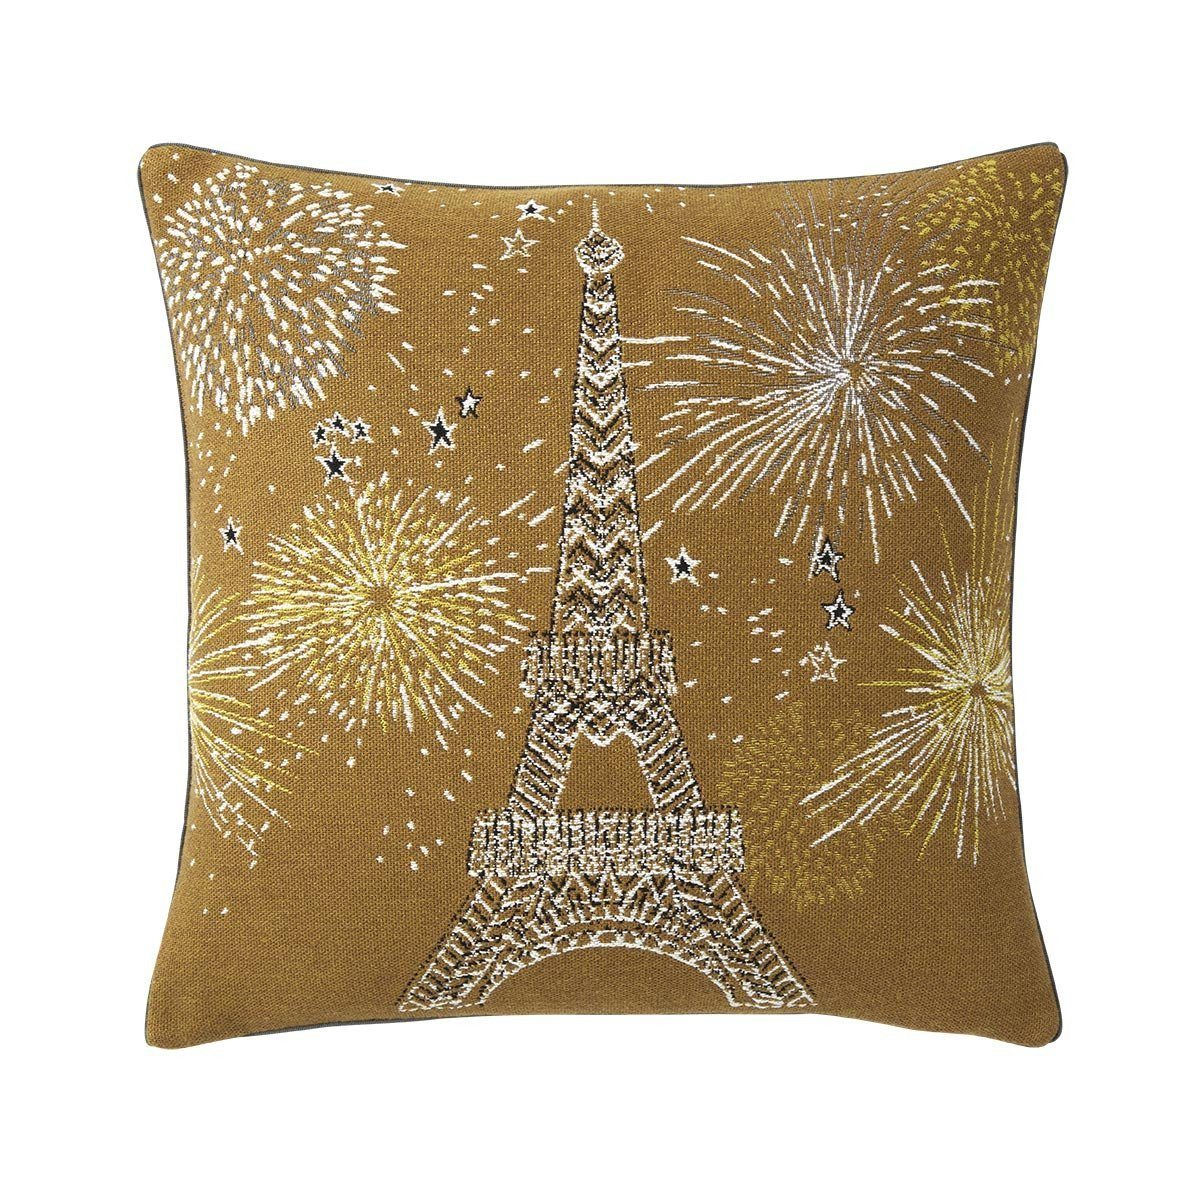 Joie Soleil Decorative Pillow by Iosis